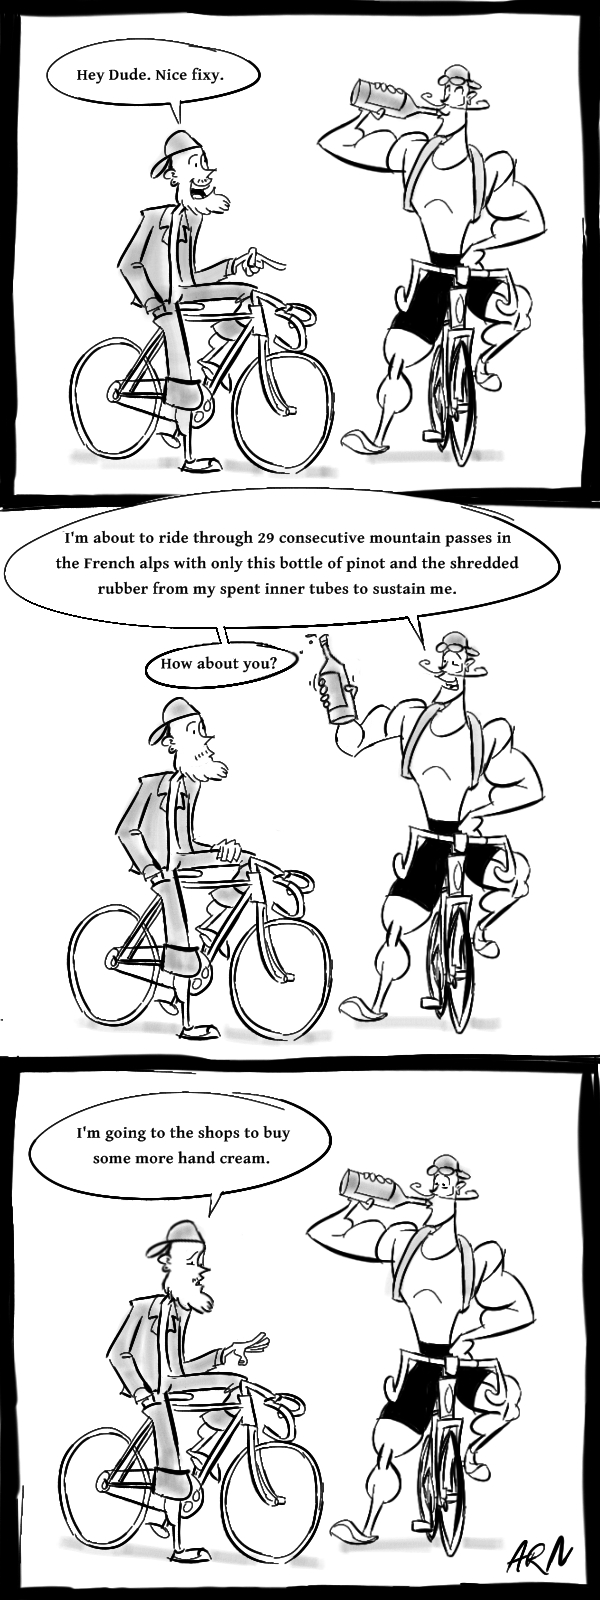 Hipsters and Fixies